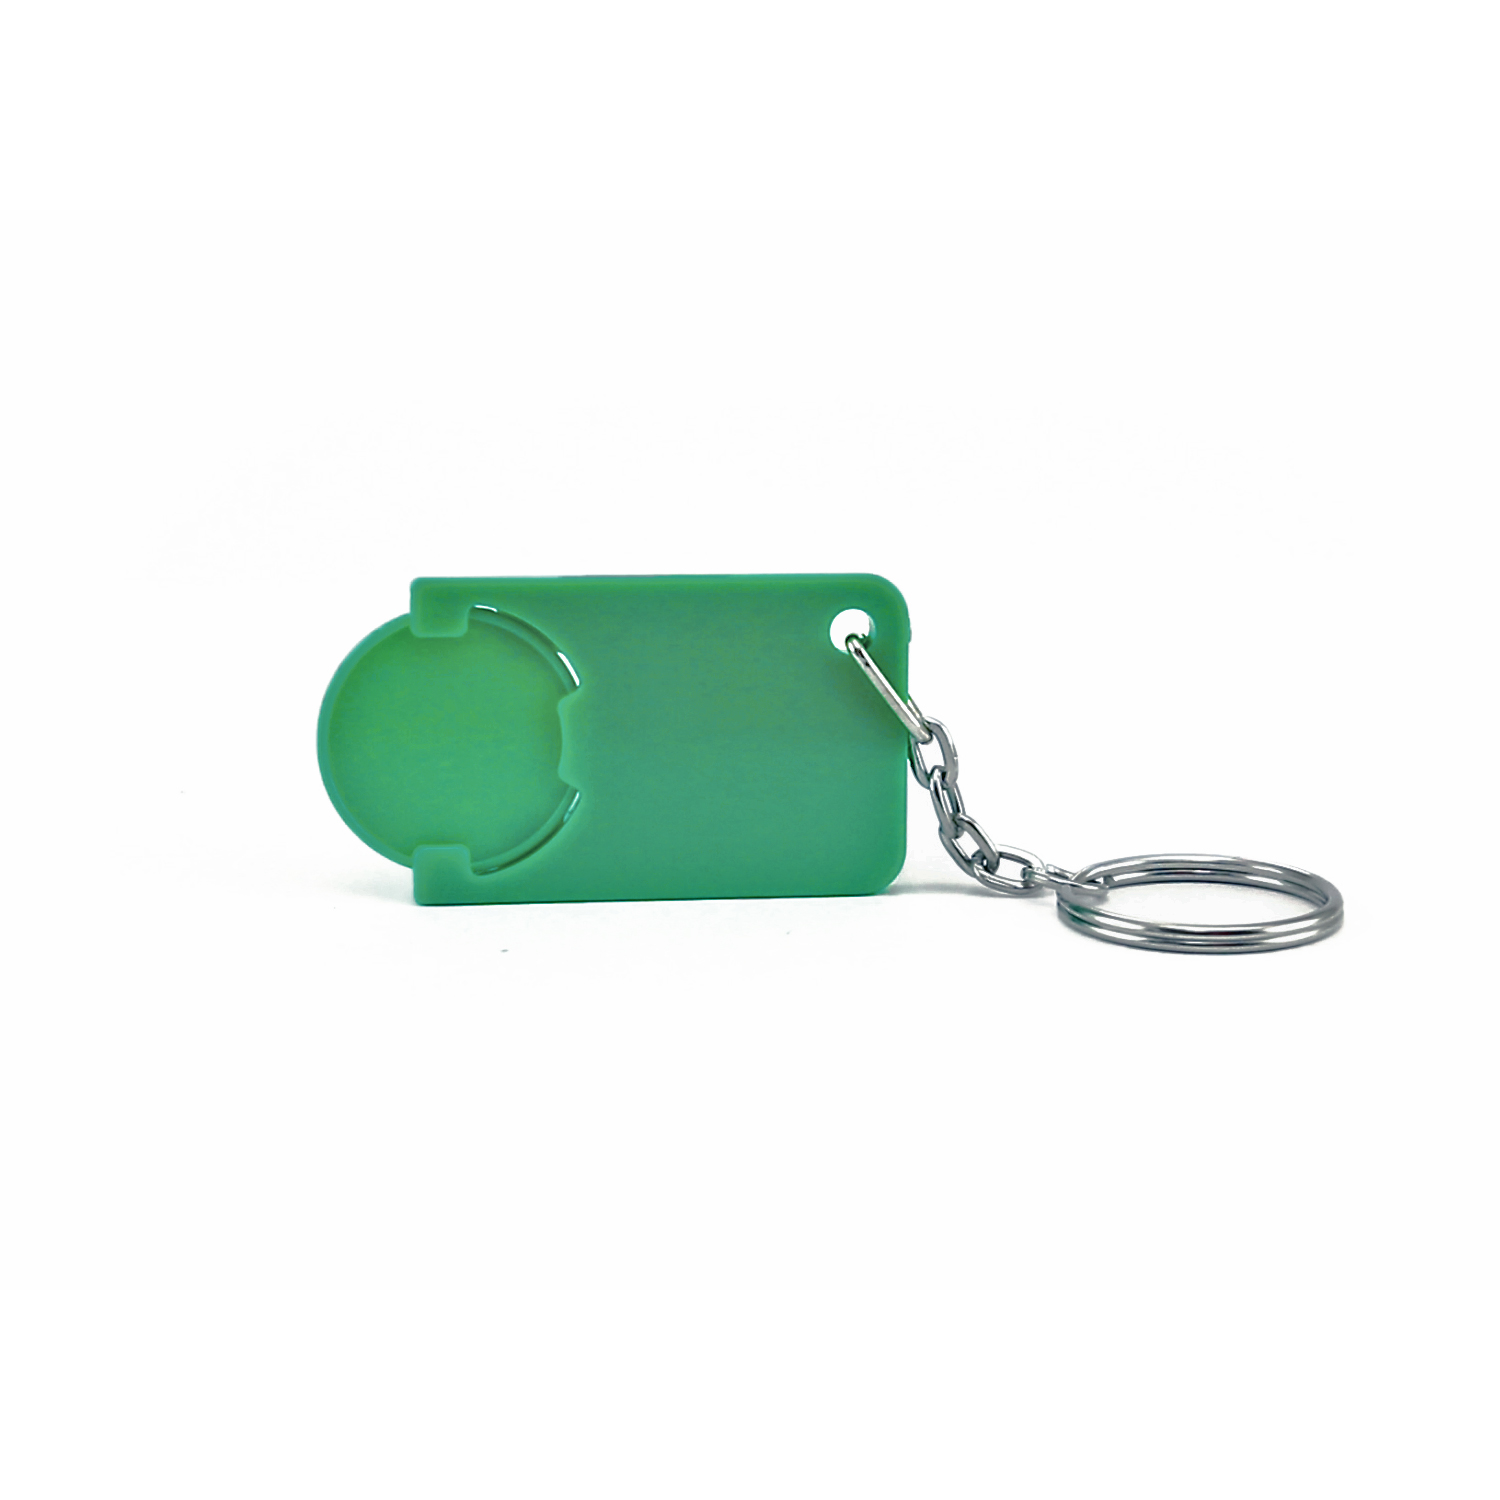 Keychain 039 (Shopping Trolley coin keychain) - hmi47039-09 (Green)